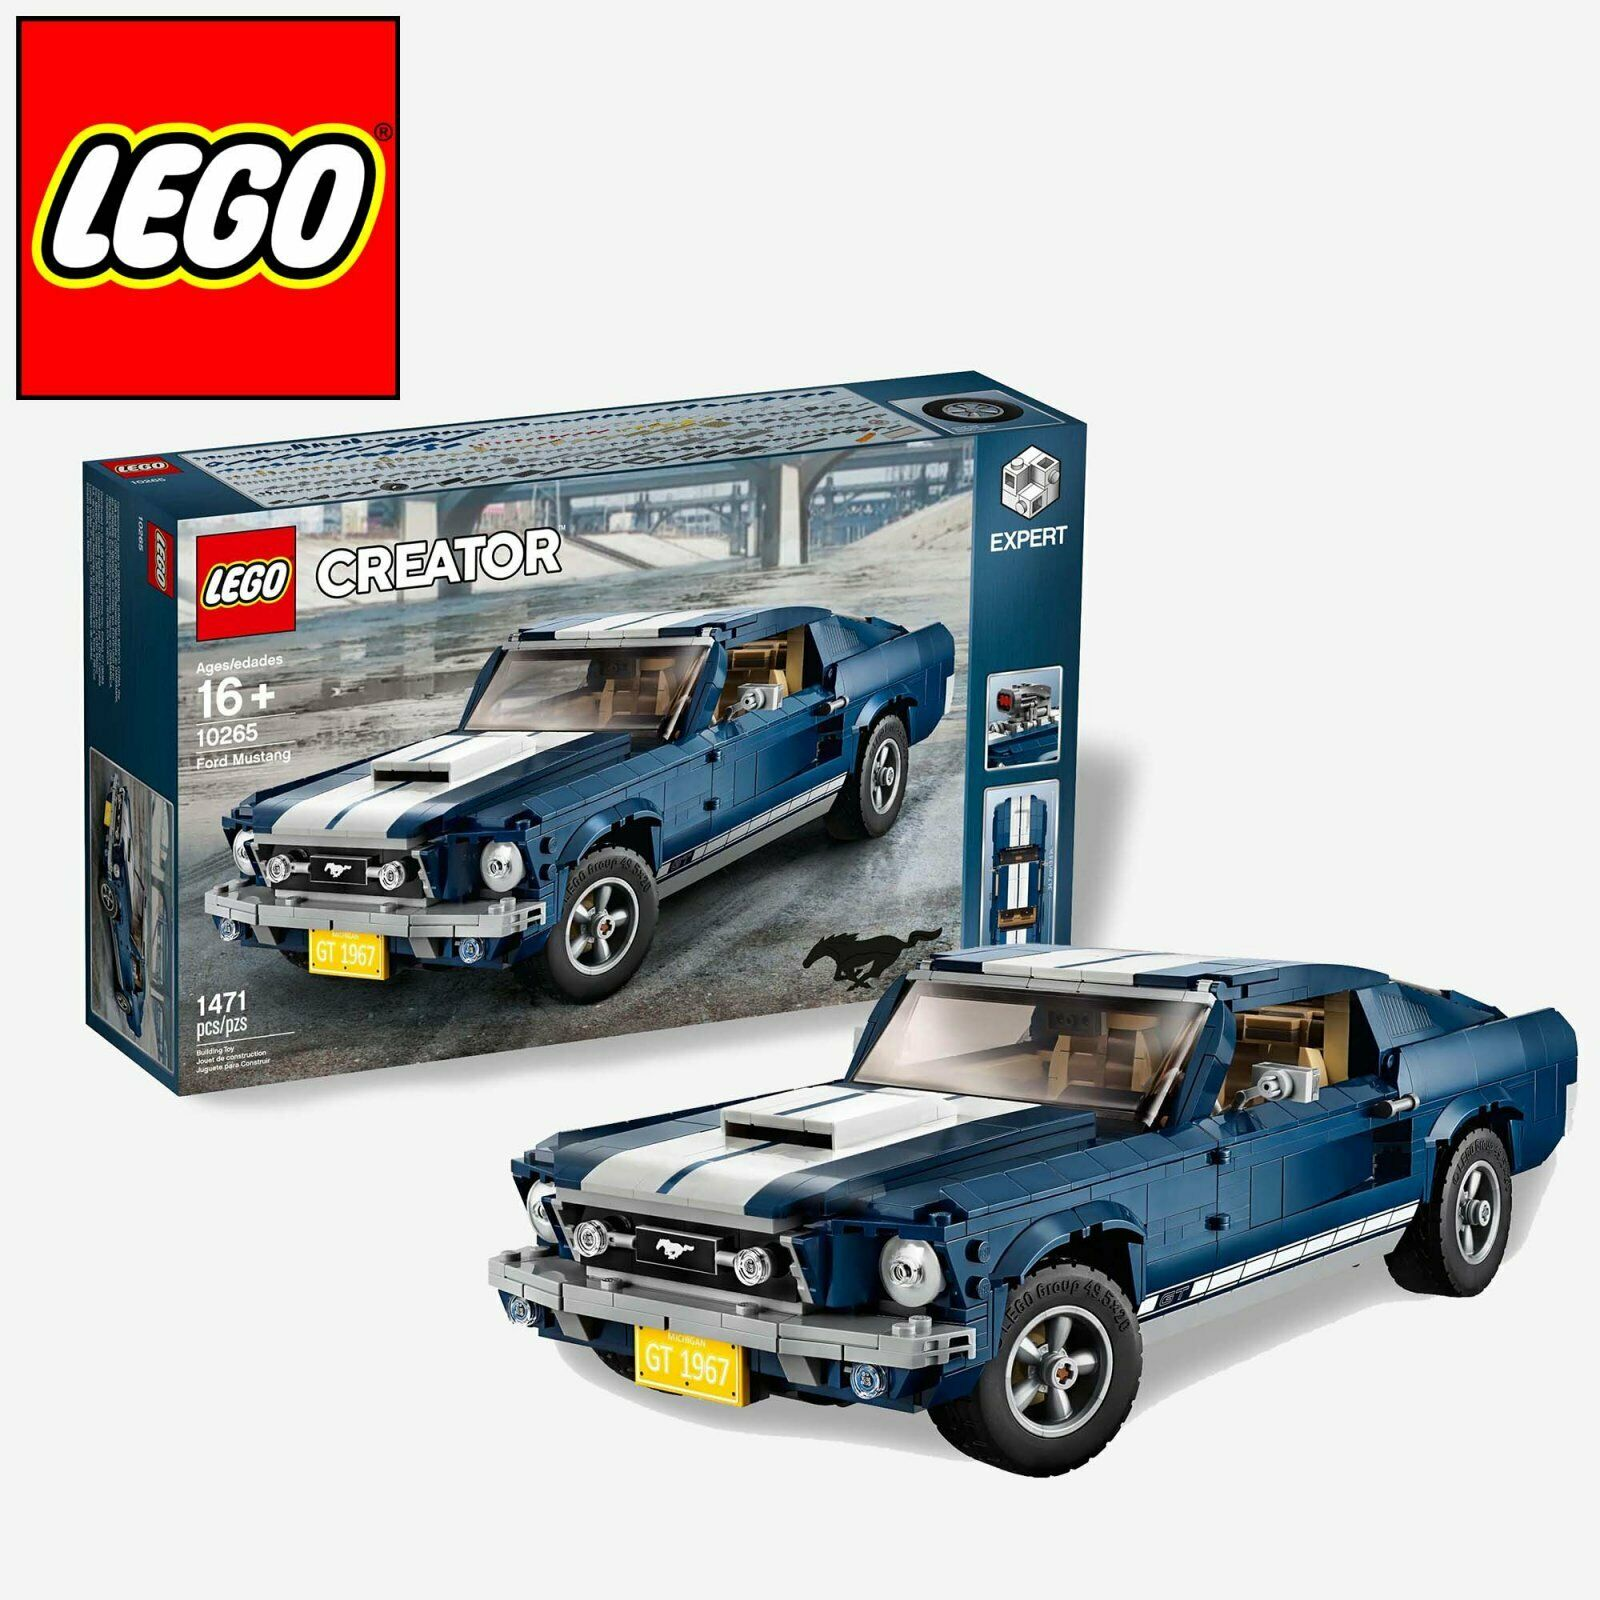 Lego Creator Creator Creator 10265 Ford Mustang 1960 Model 2019 Release 1471 pcs New In Box 0486cc